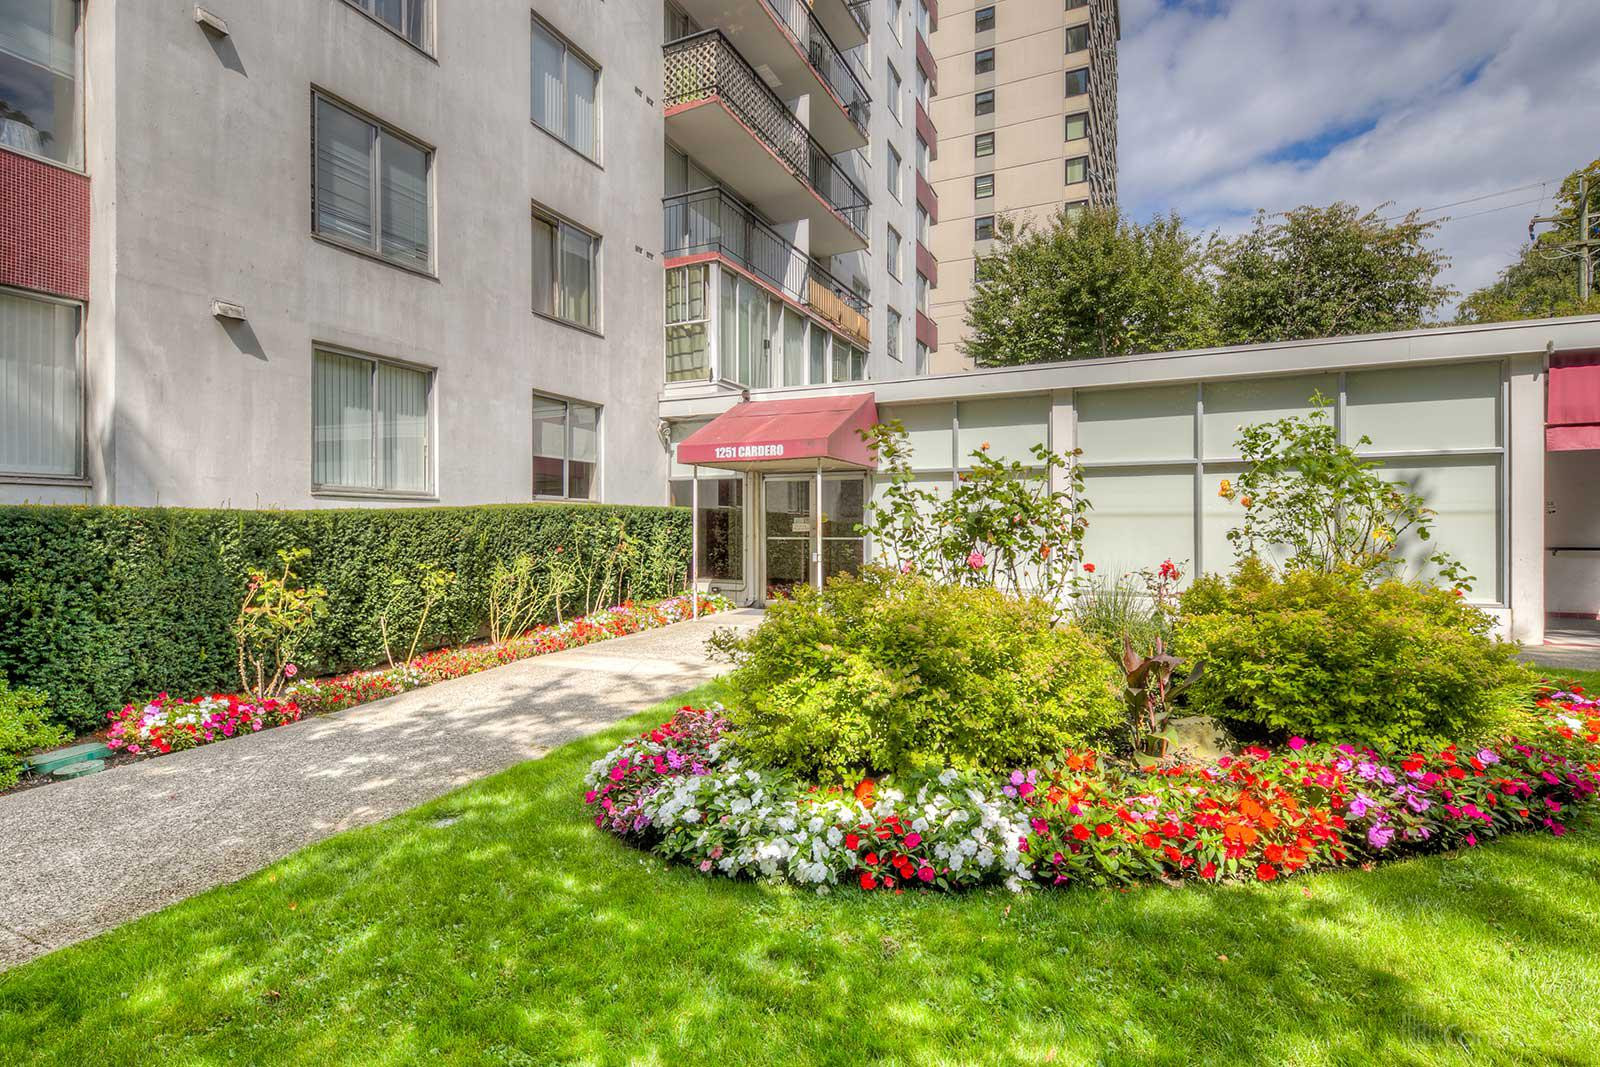 Surfcrest at 1251 Cardero St, Vancouver 0